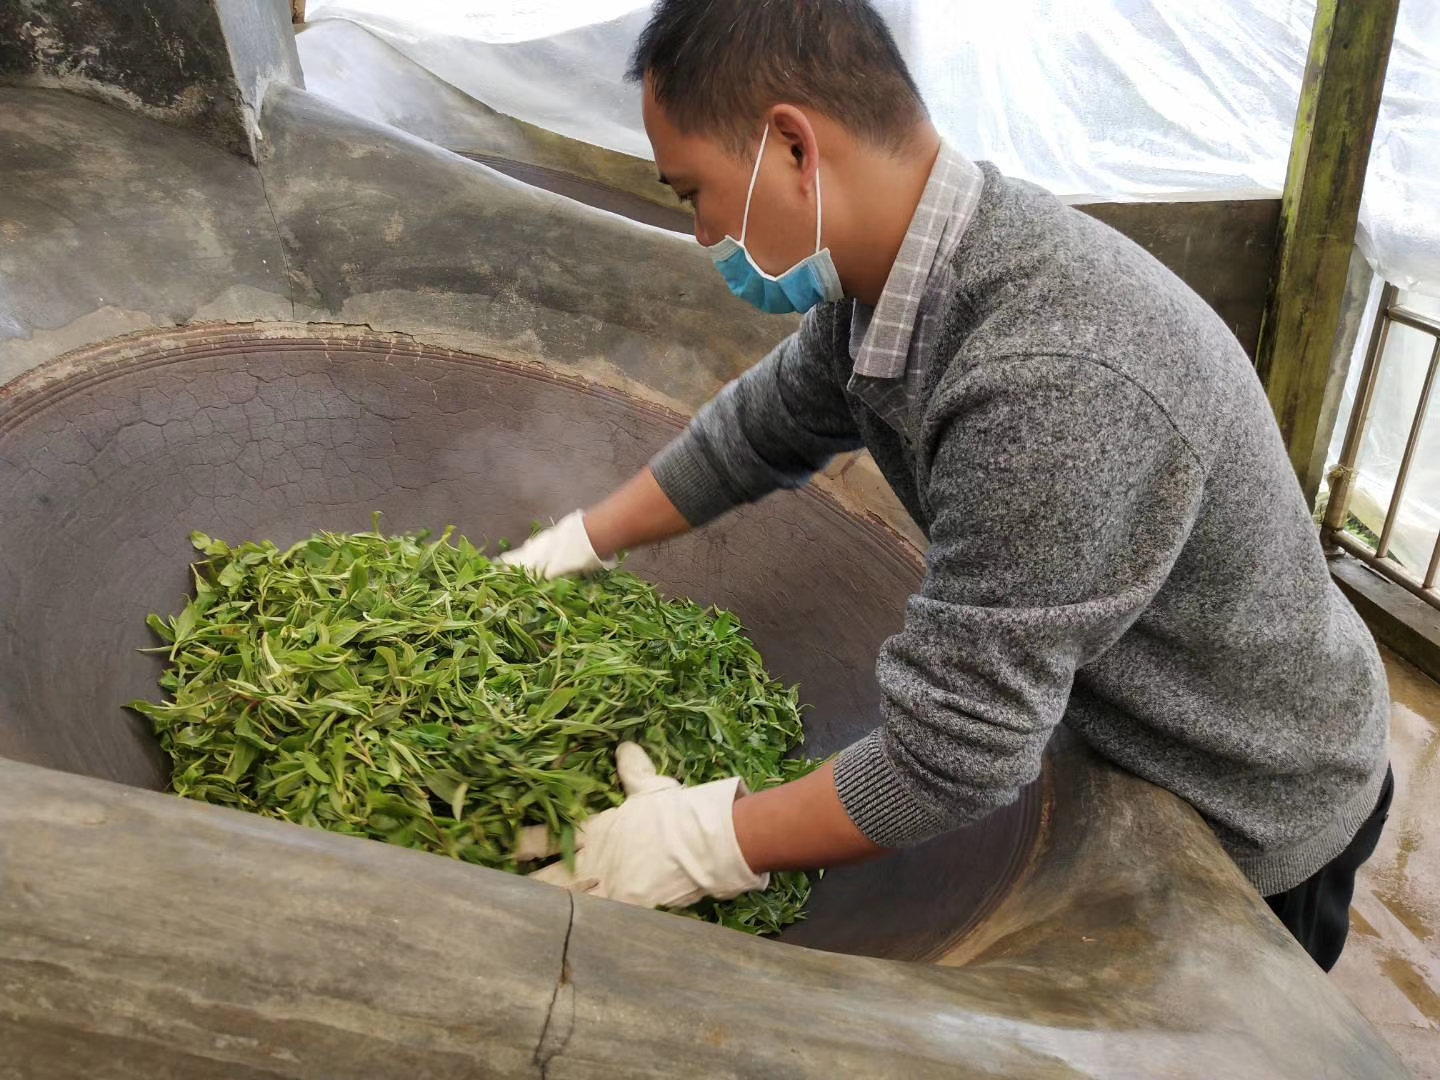 Whole leaves being pan-fried, an essential step that will help define the taste of the tea.